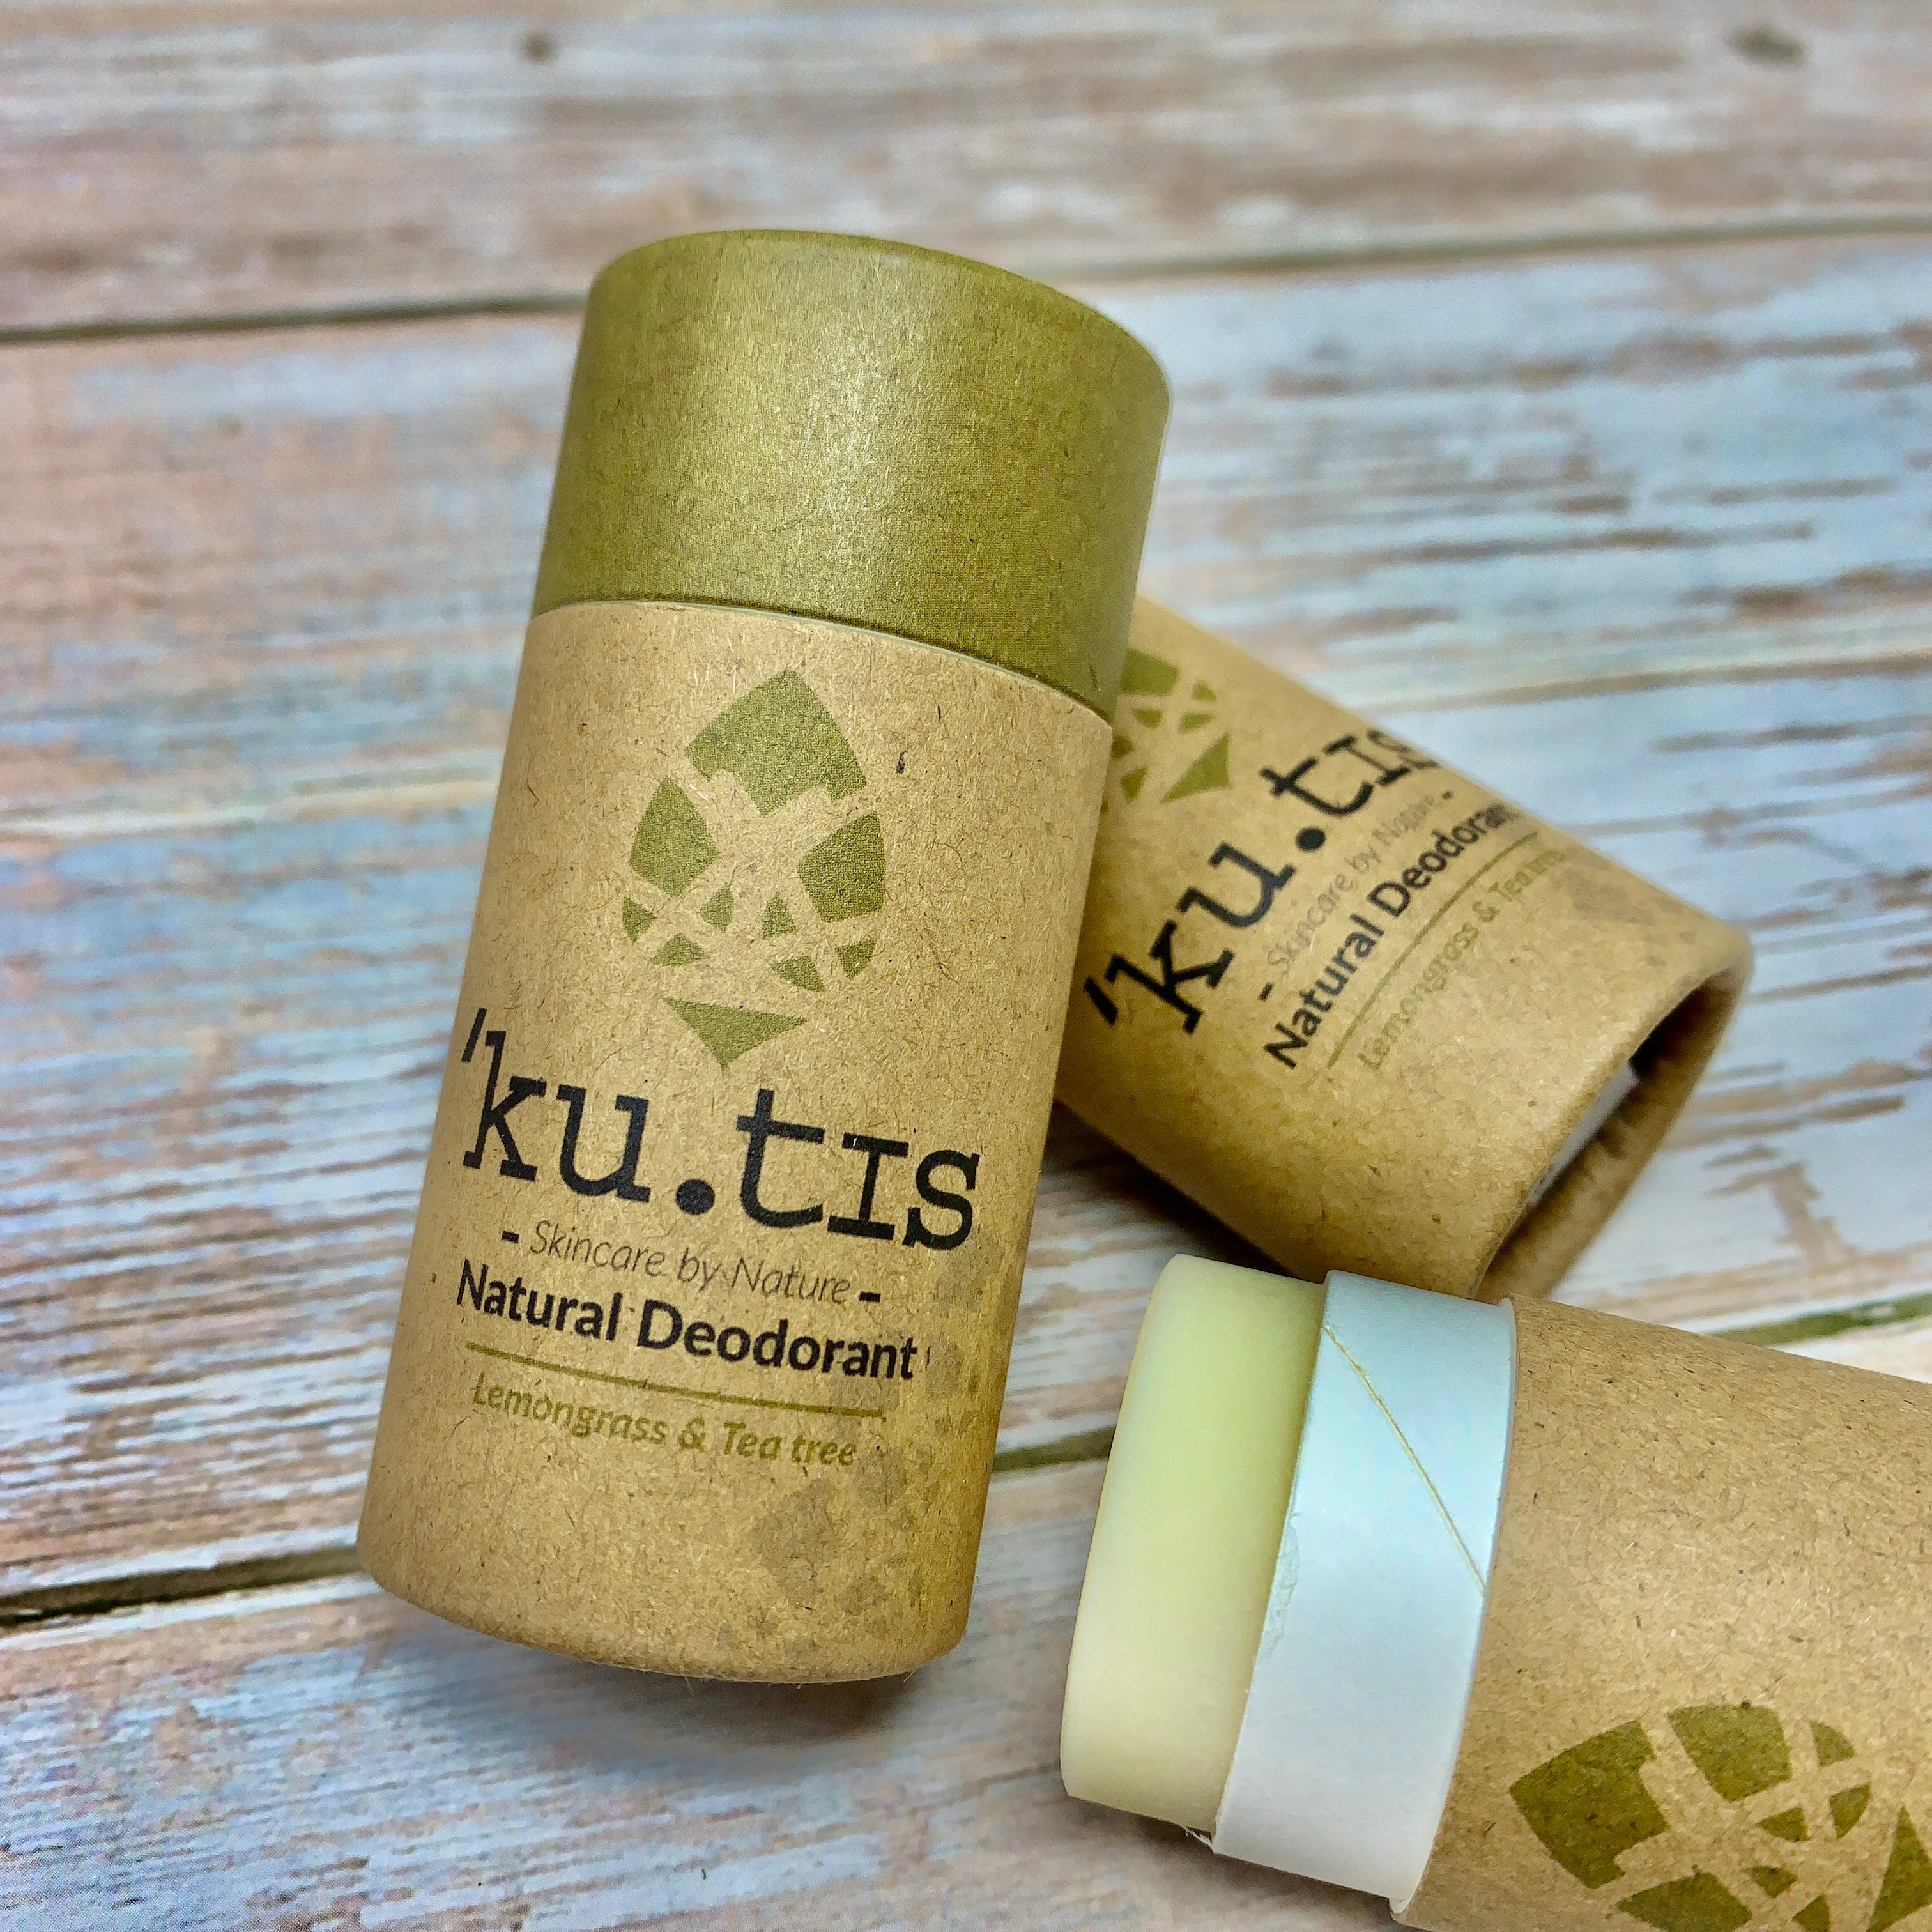 natural deodorant in cardboard tube by kutis, green and brown container and open deodorant with lemongrass and tea tree formula